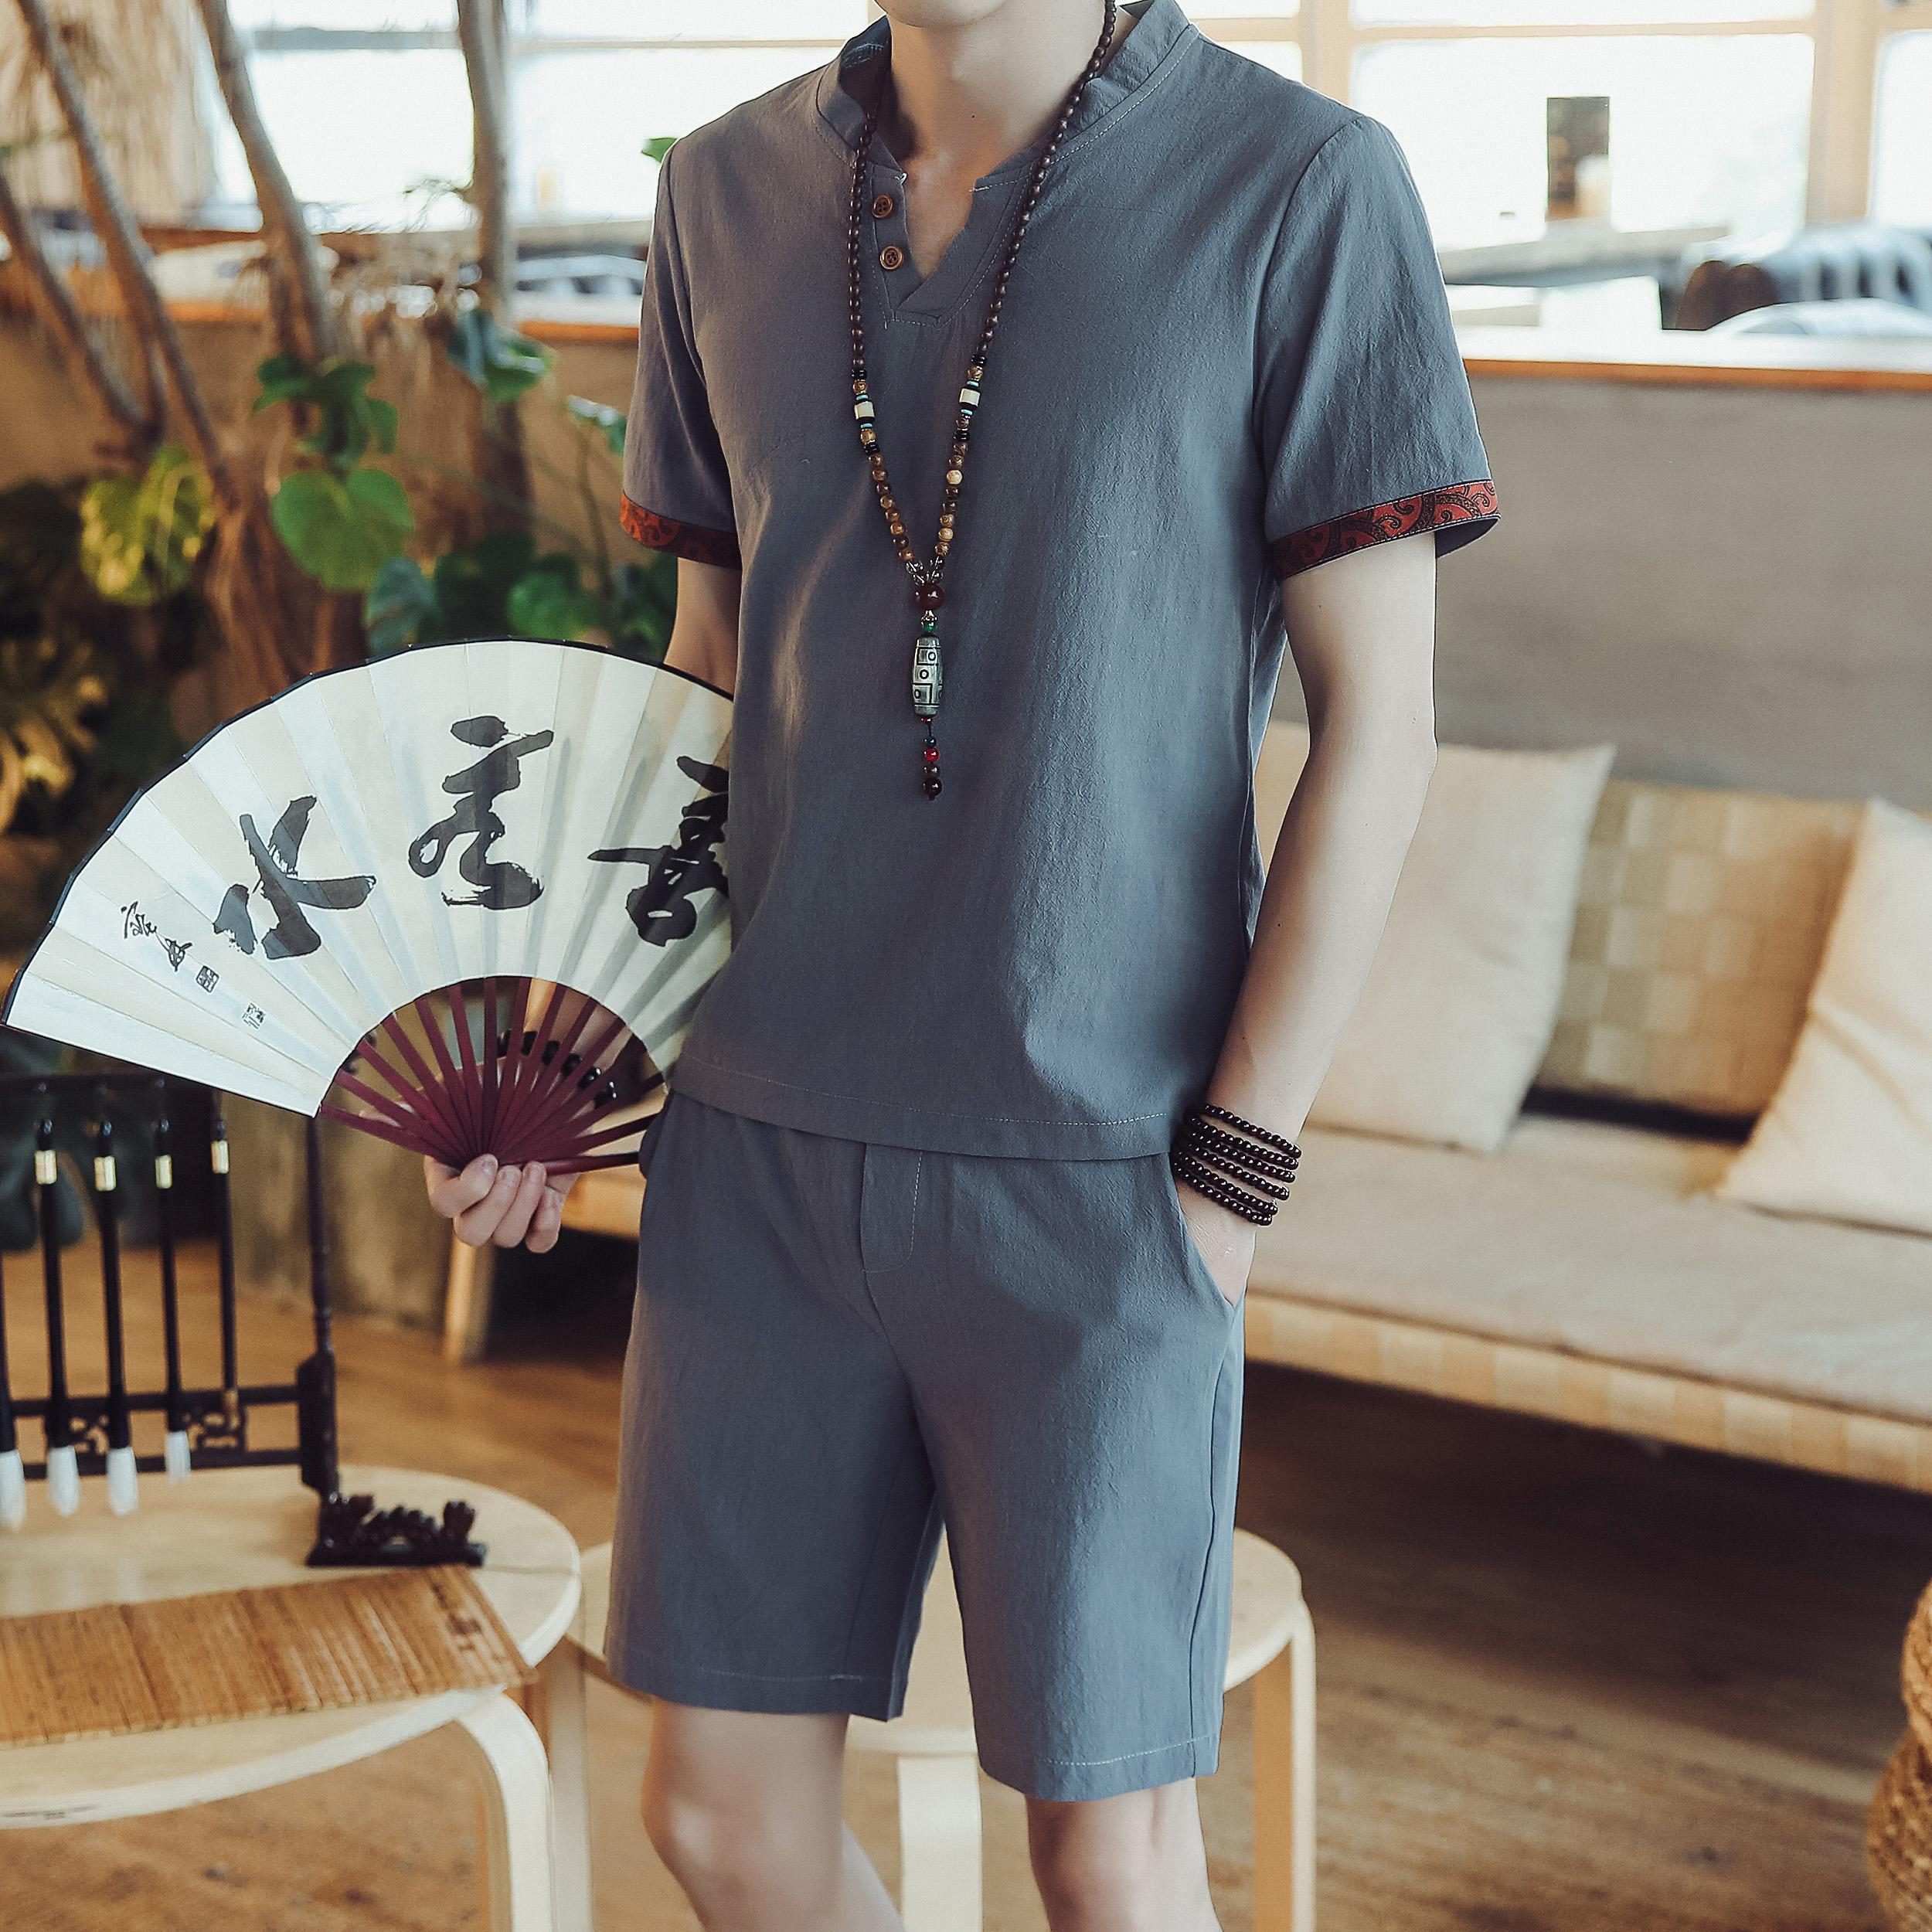 Loldeal Summer Men 39 s Chinese Style Plain Short Sleeve T Shirt Shorts Cotton Set in Men 39 s Sets from Men 39 s Clothing